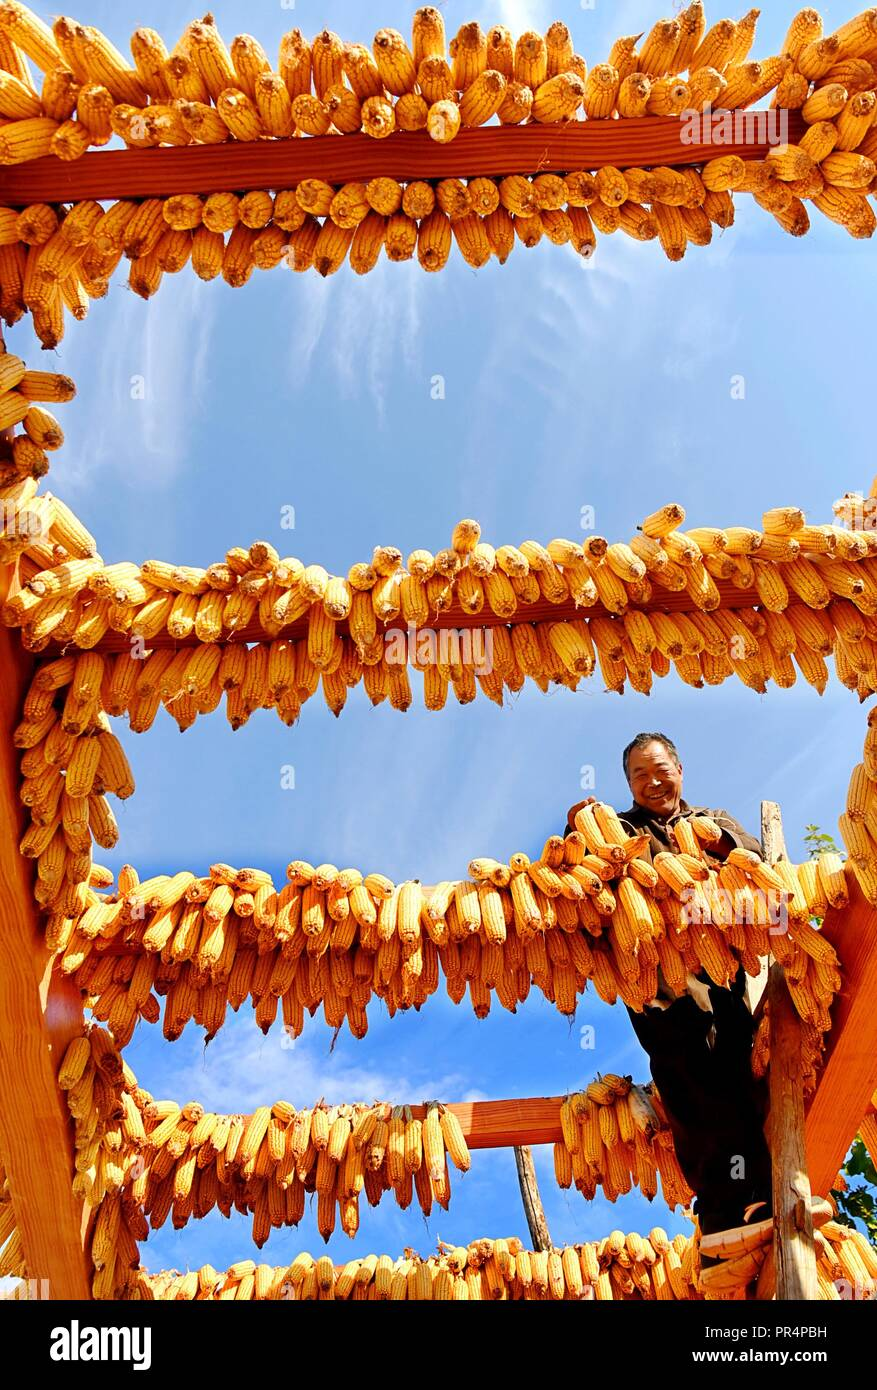 Yiyuan, China's Shandong Province. 27th Sep, 2018. A farmer airs newly-harvested corns in Longwangya Village of Zibo City, east China's Shandong Province, Sept. 27, 2018. Credit: Zhao Dongshan/Xinhua/Alamy Live News - Stock Image